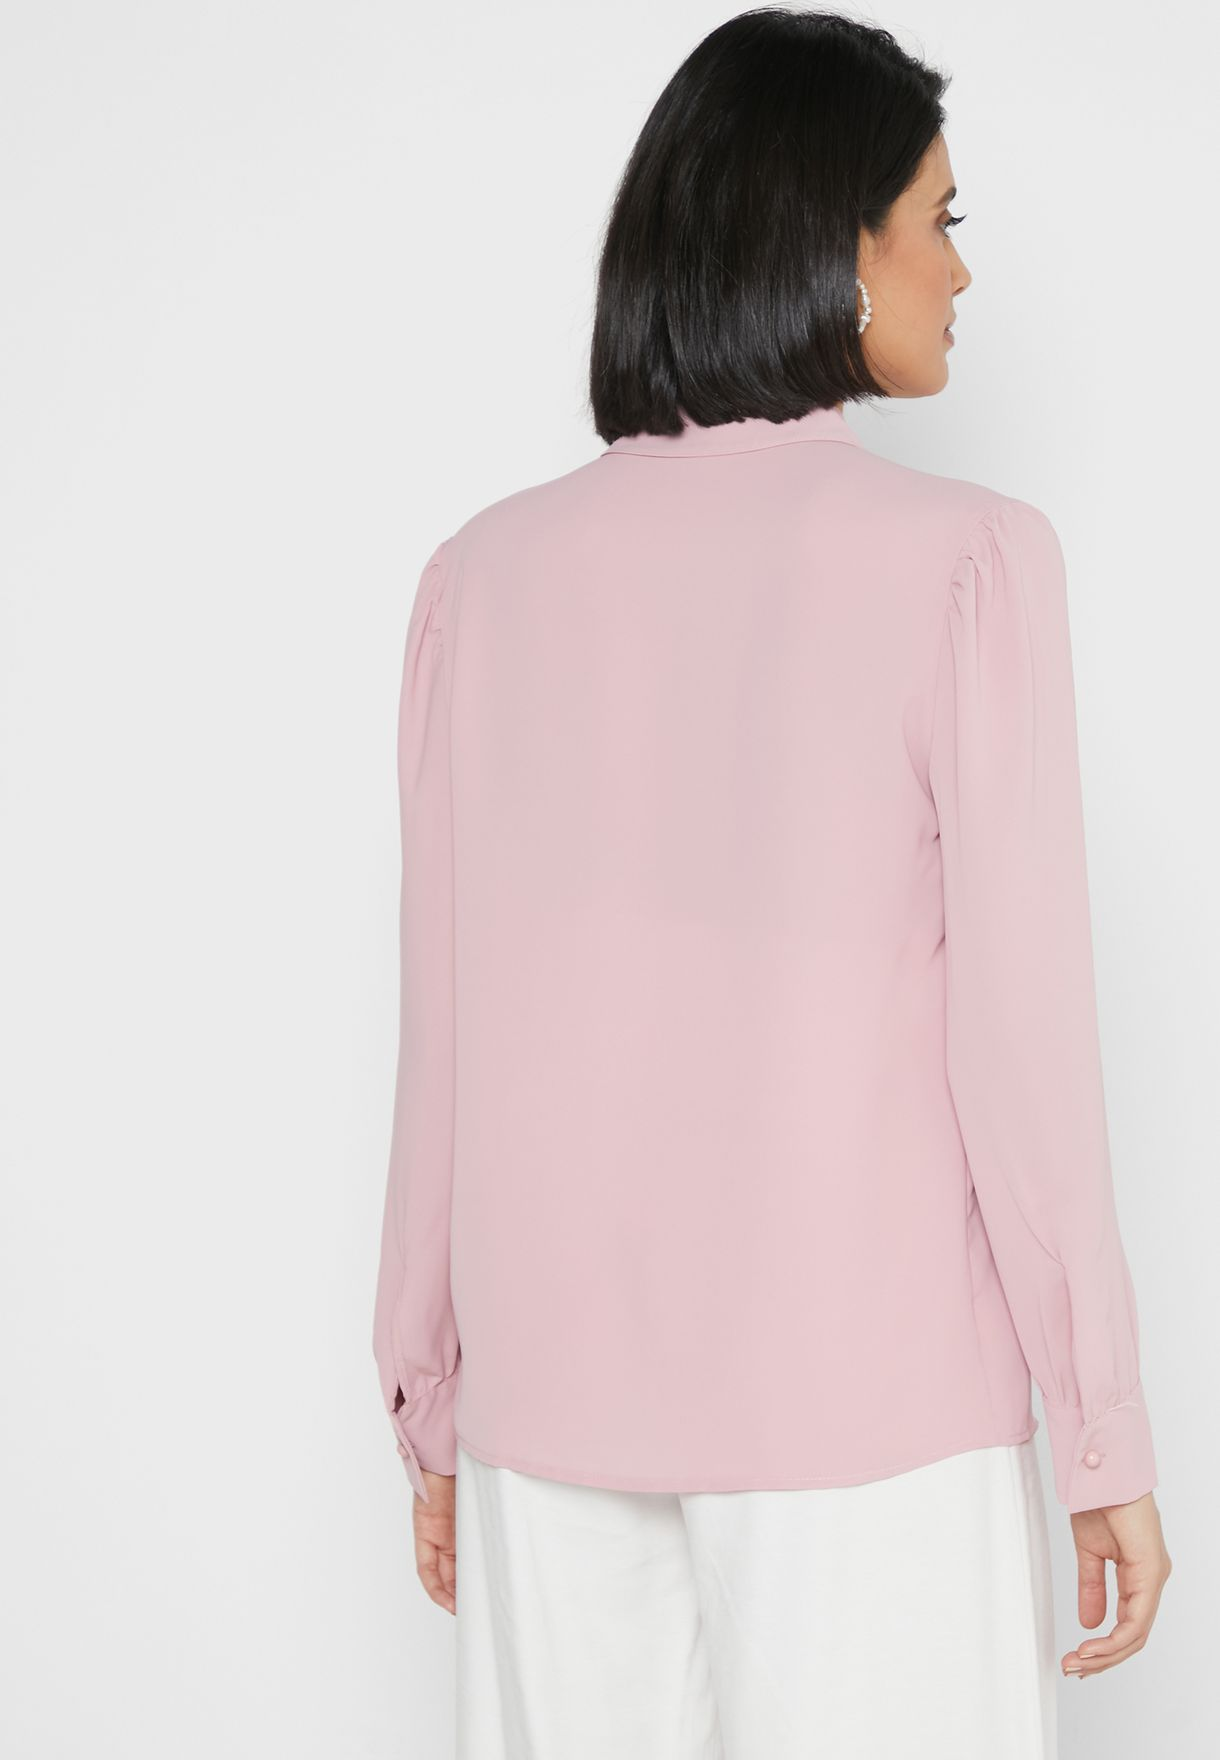 Gathered Shoulder Shirt